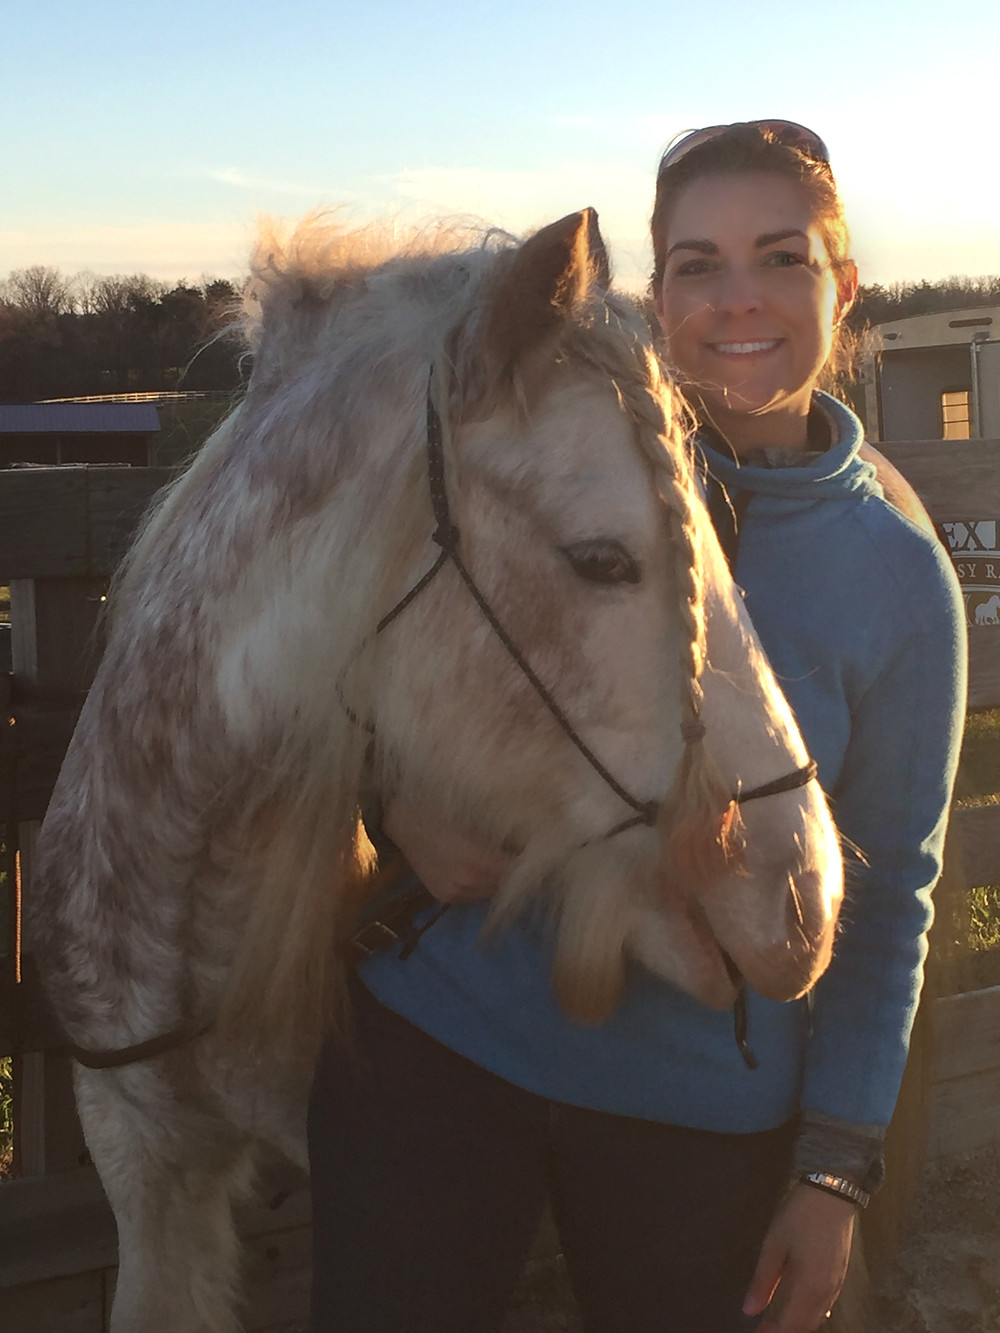 Jennifer with Willy the White Horse outside on the ranch